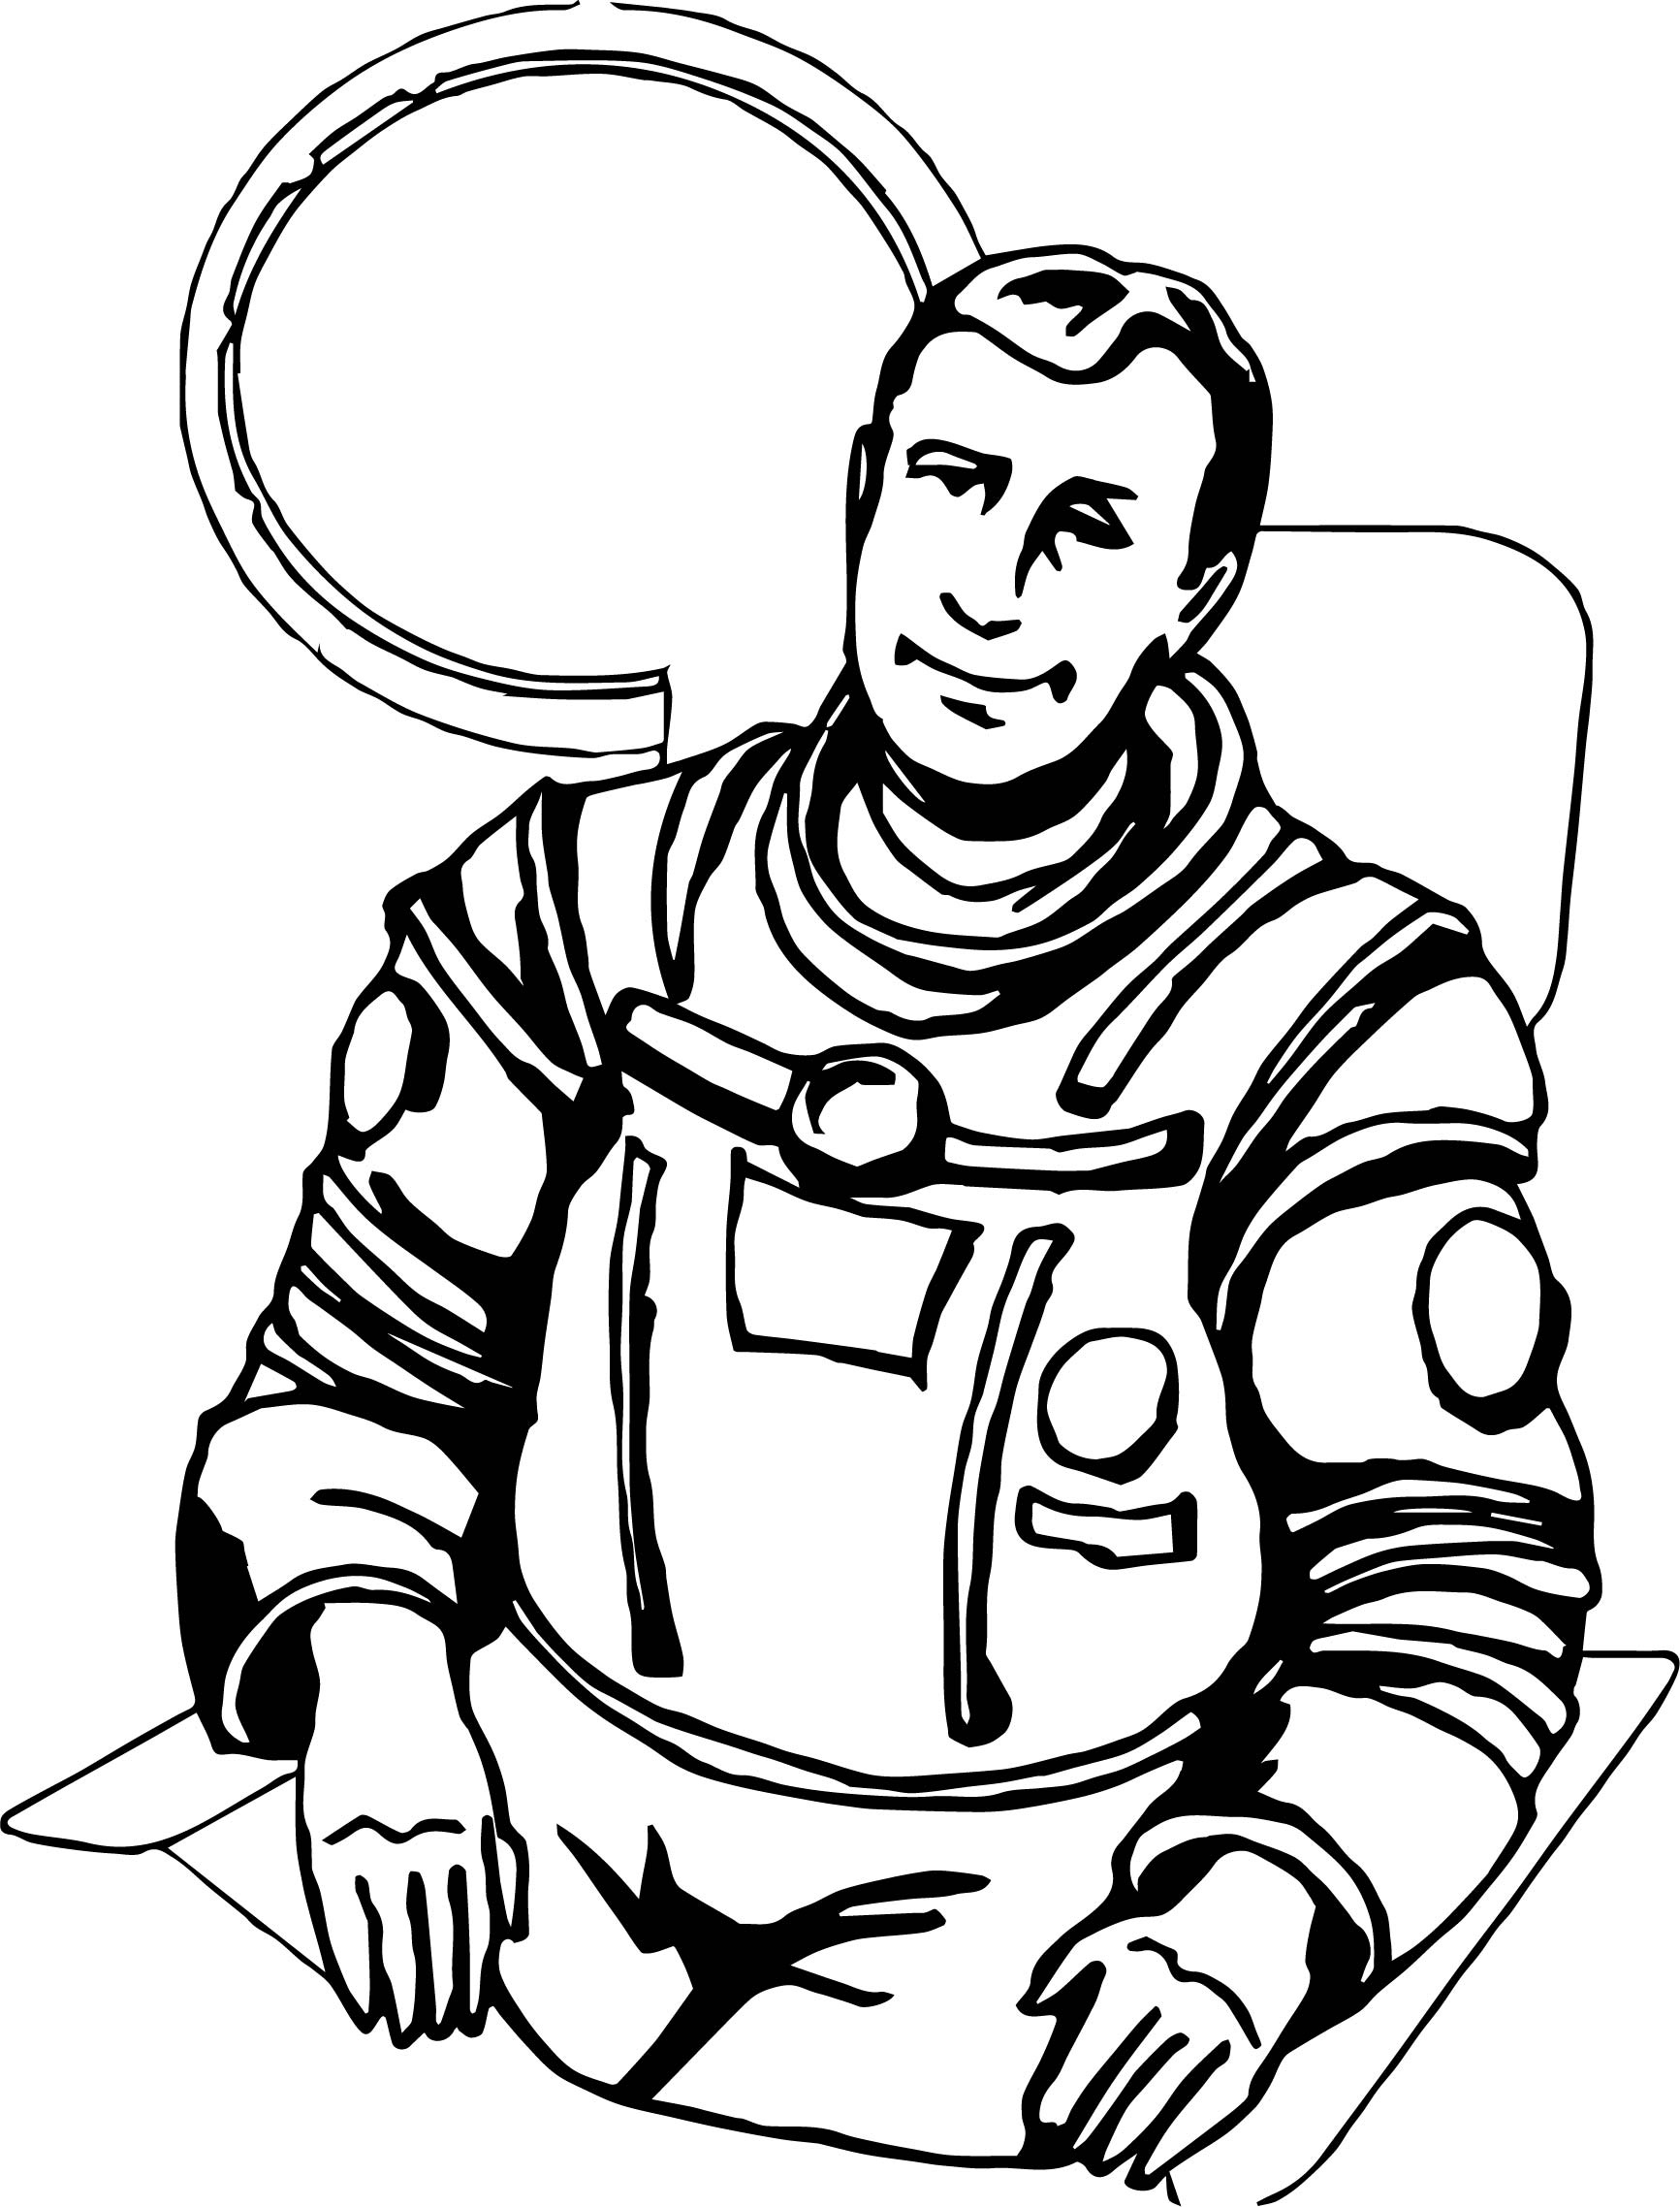 Real Astronaut Coloring Page | Wecoloringpage.com